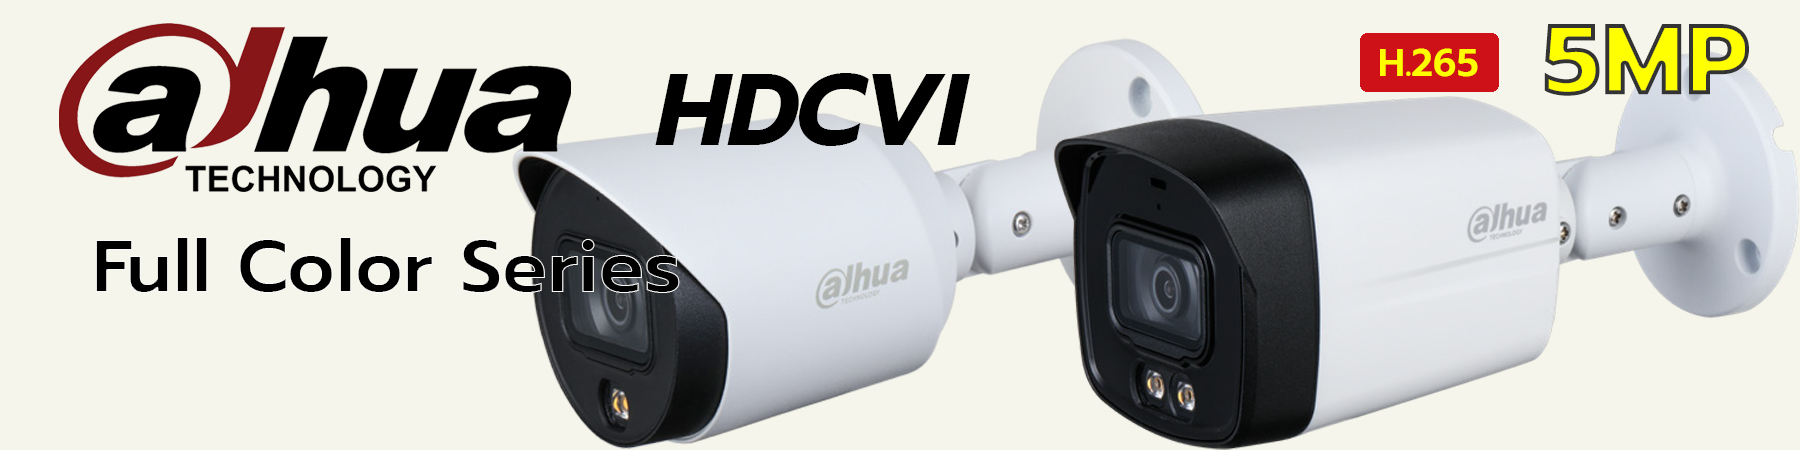 กล้องวงจรปิด Dahua, กล้องวงจรปิด Dahua Full Color, Dahua Full Color 5MP, Dahua Built-in Mic, HAC-HFW1509T-A-LED, HAC-HDW1509TL-A-LED, HAC-HFW1509TLM-A-LED, HAC-HDW1509T-A-LED